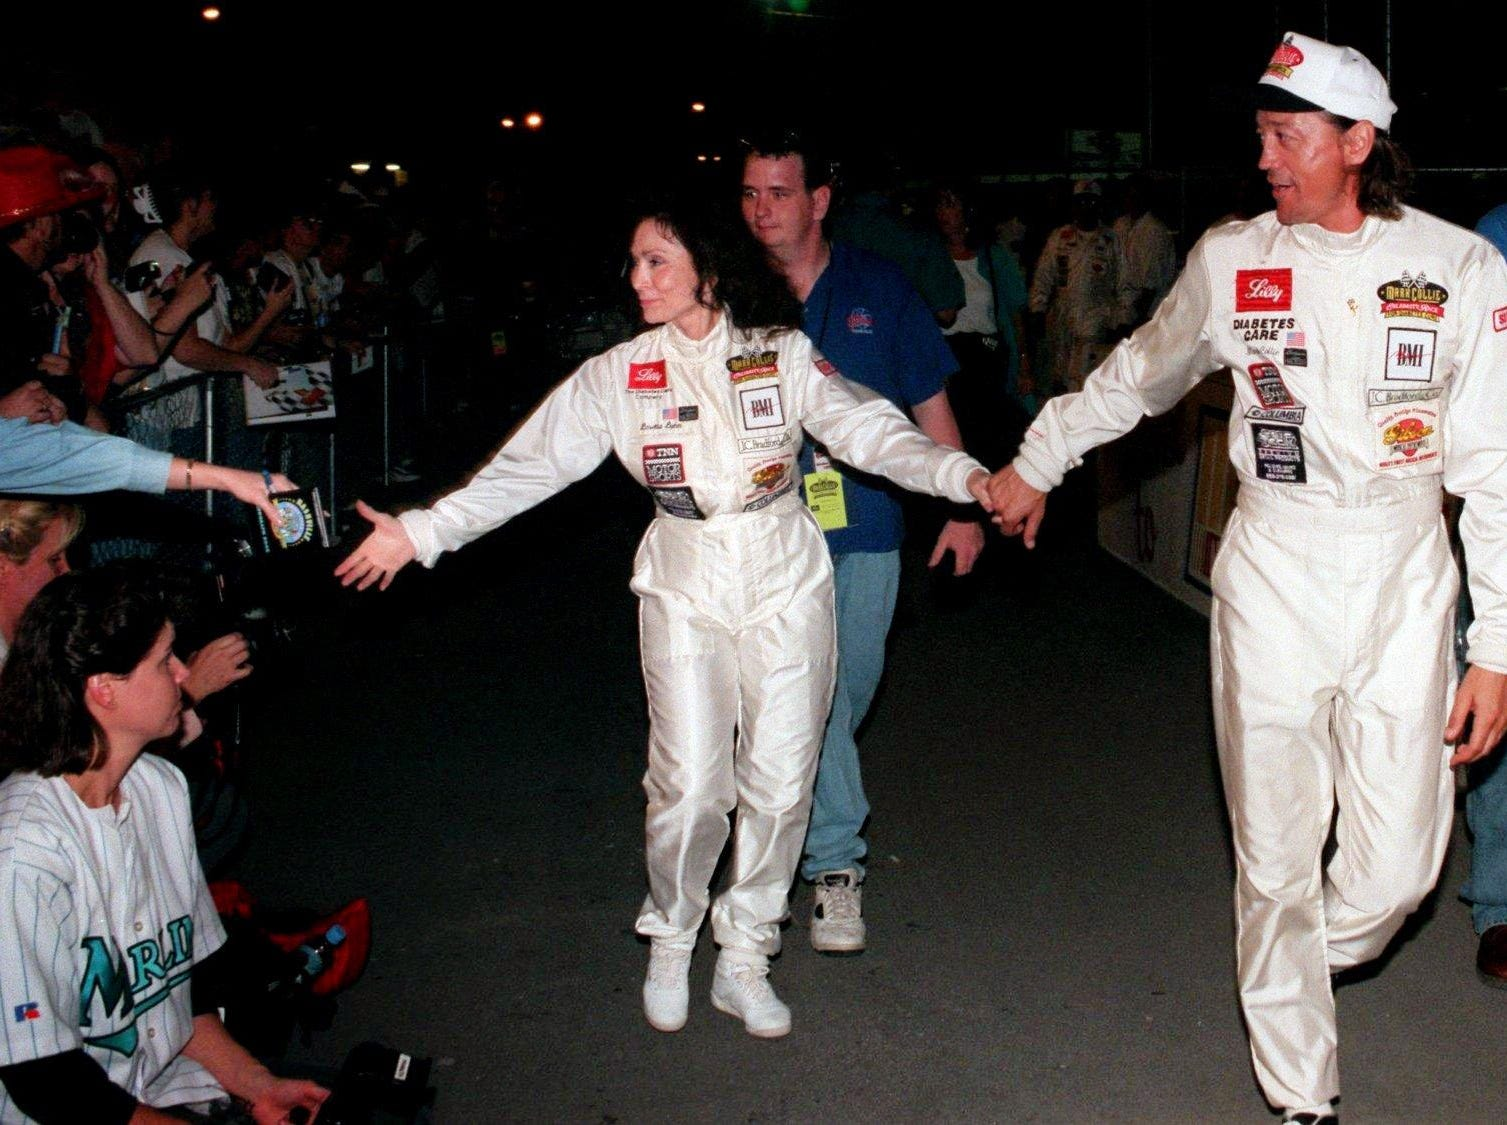 Loretta Lynn, center, and Mark Collie, right, make their way to the stage at the Mark Collie celebrity legends race at Nashville Speedway Oct. 4, 1997.